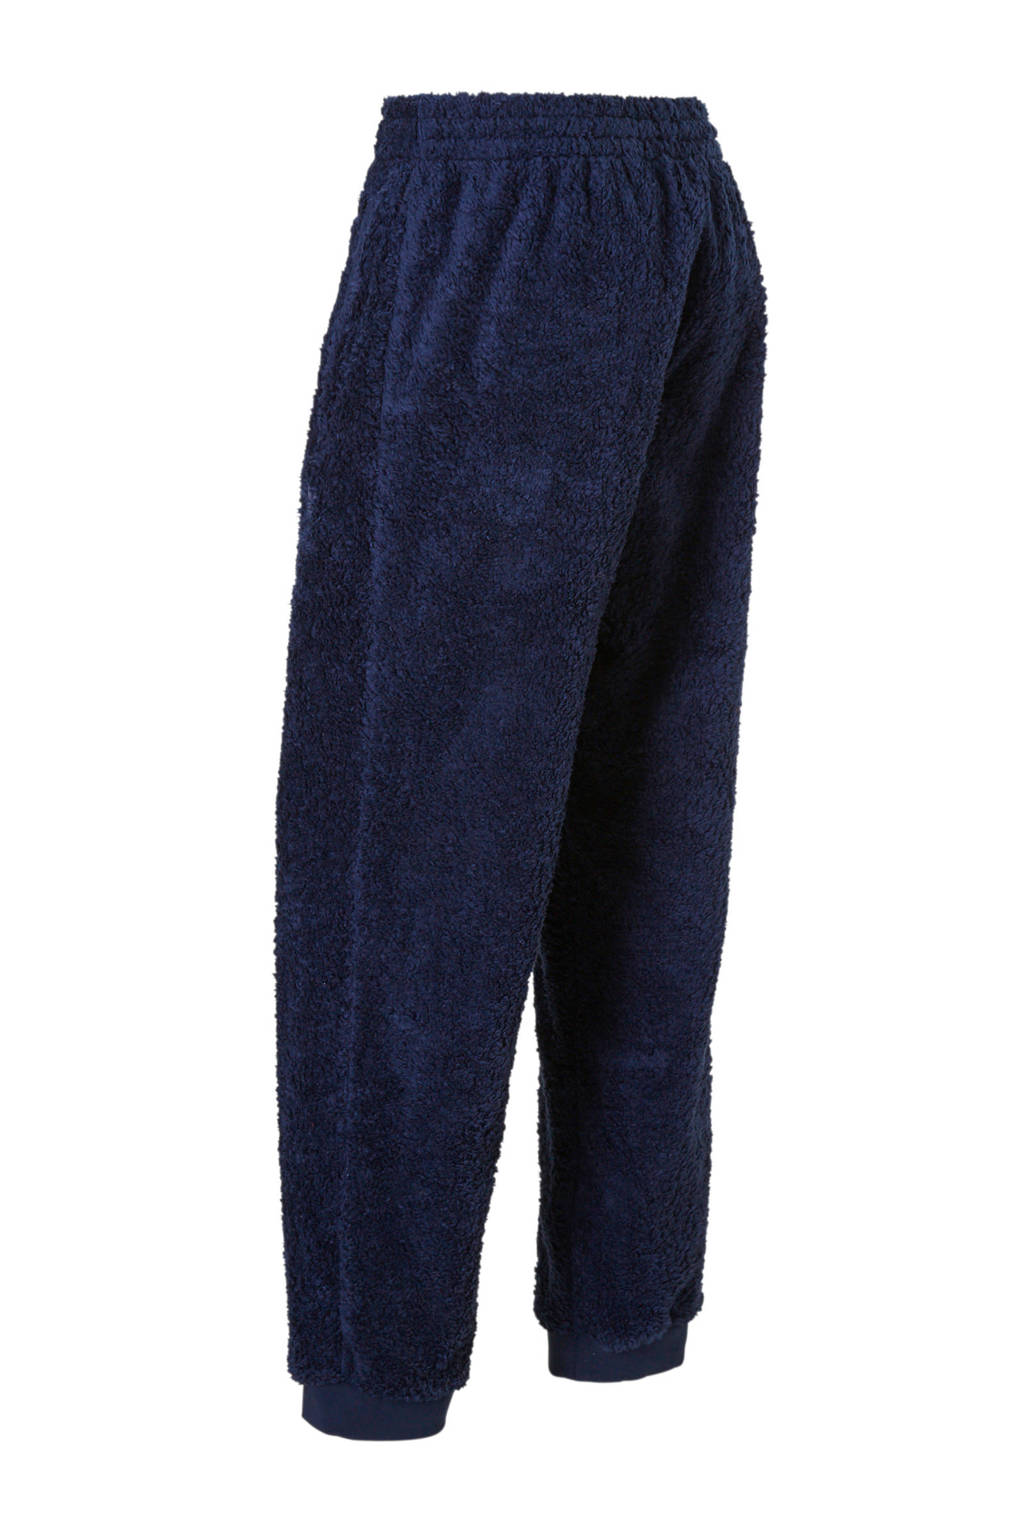 Donkerblauw Joggingbroek Adidasoriginals Van Adidasoriginals Joggingbroek Teddy EqPXwdC